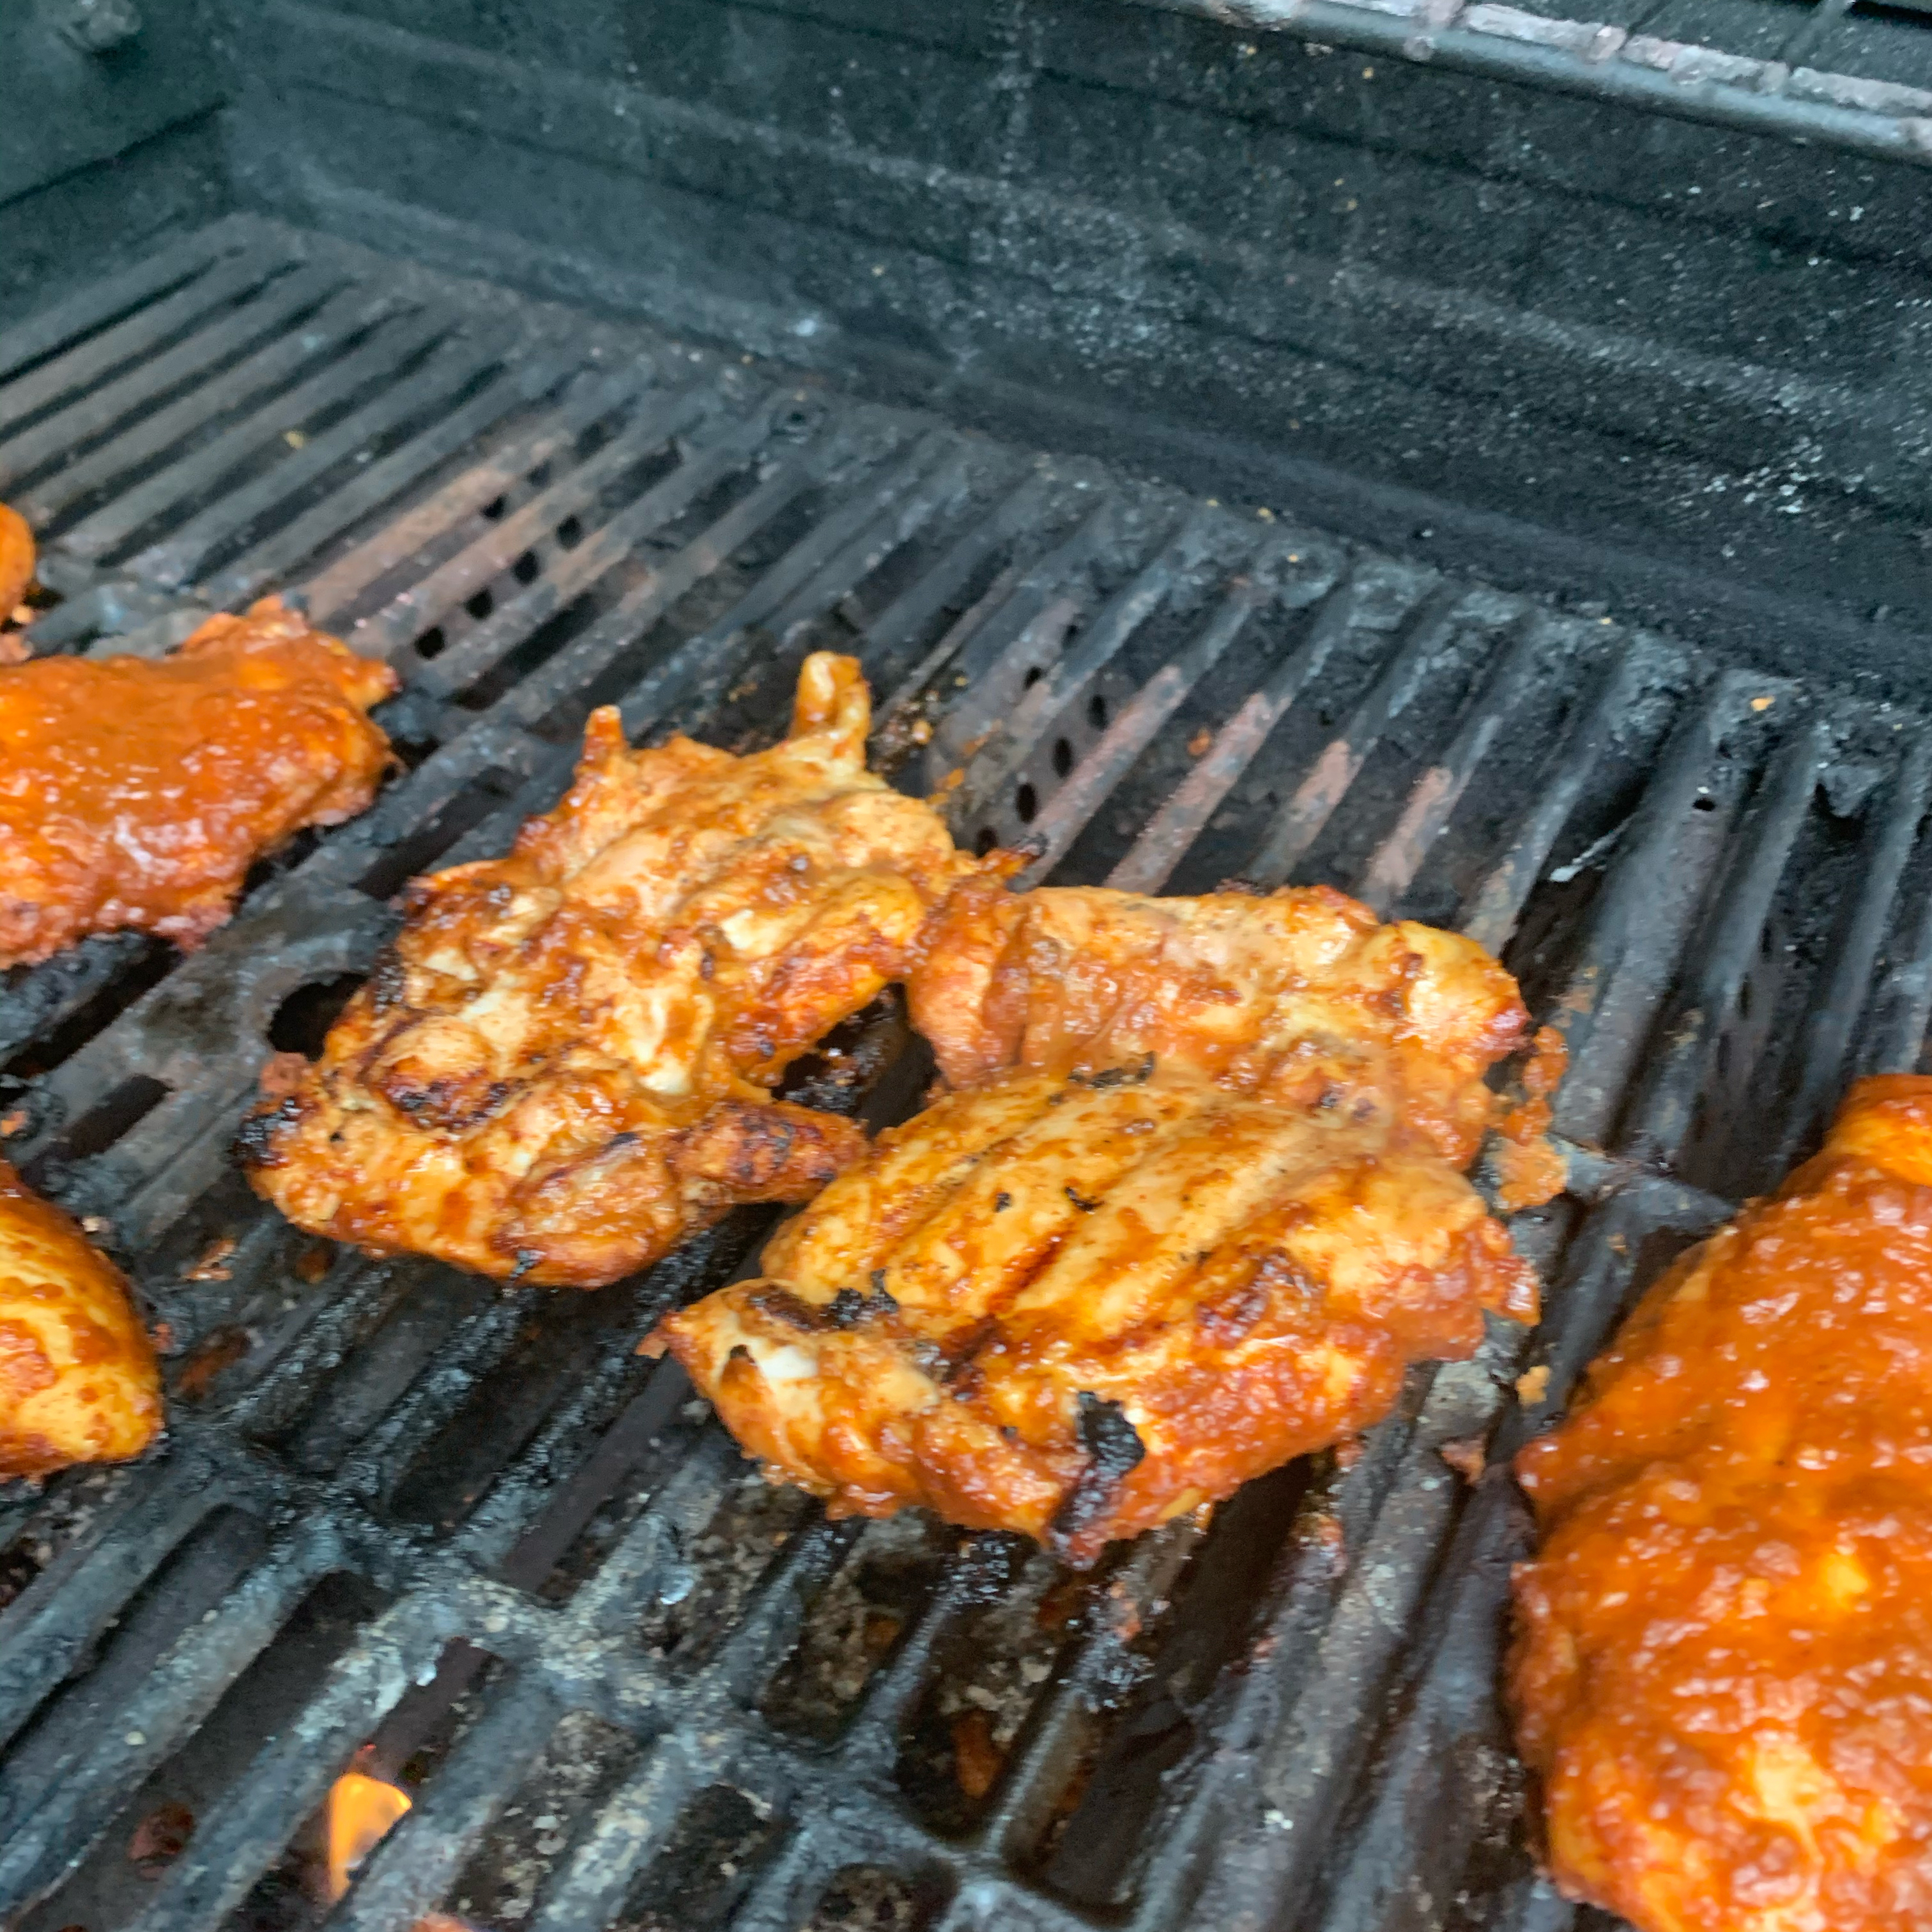 Grilled Chipotle Marinated Chicken